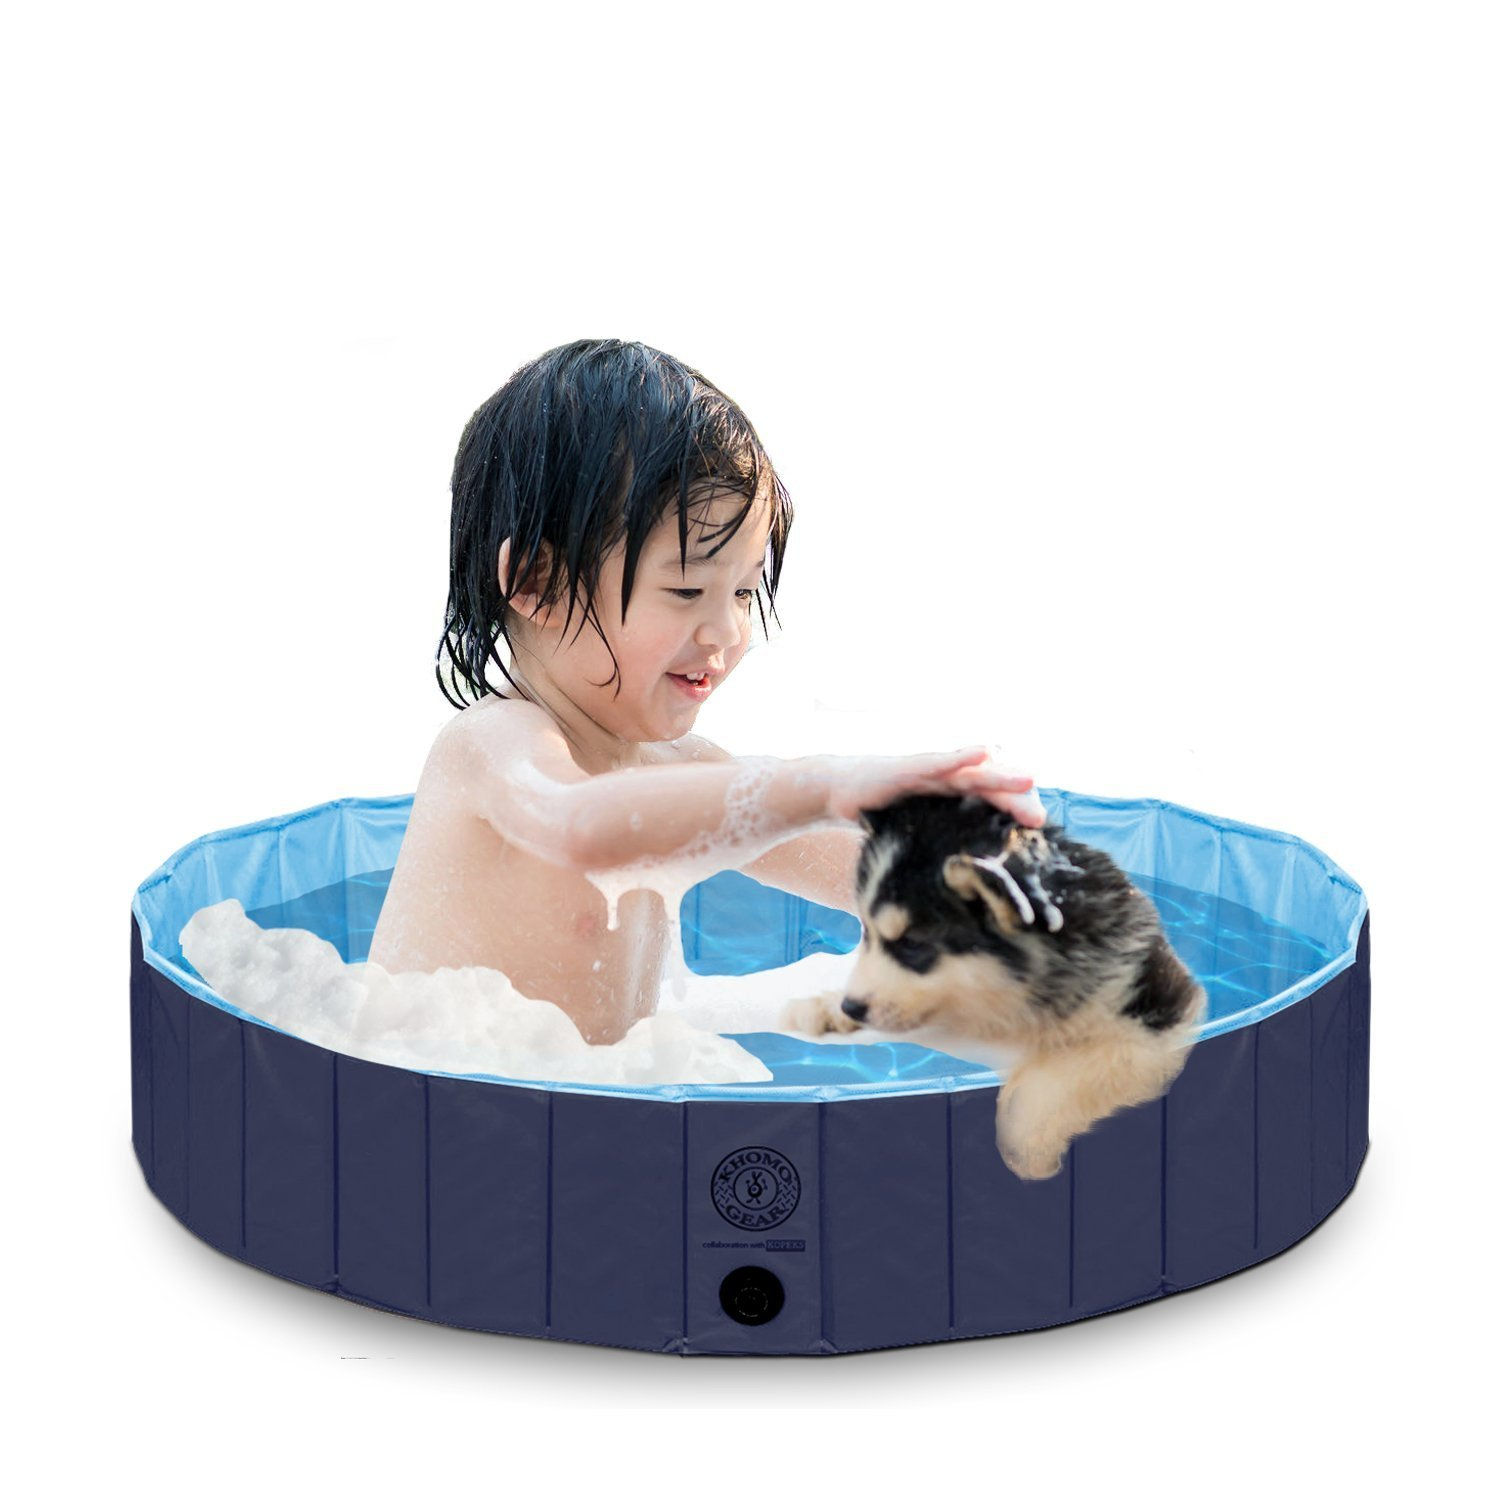 KOPEKS Outdoor Swimming Pool Bathing Tub - Portable Foldable - Ideal for Pets - Large 47'' x 12''